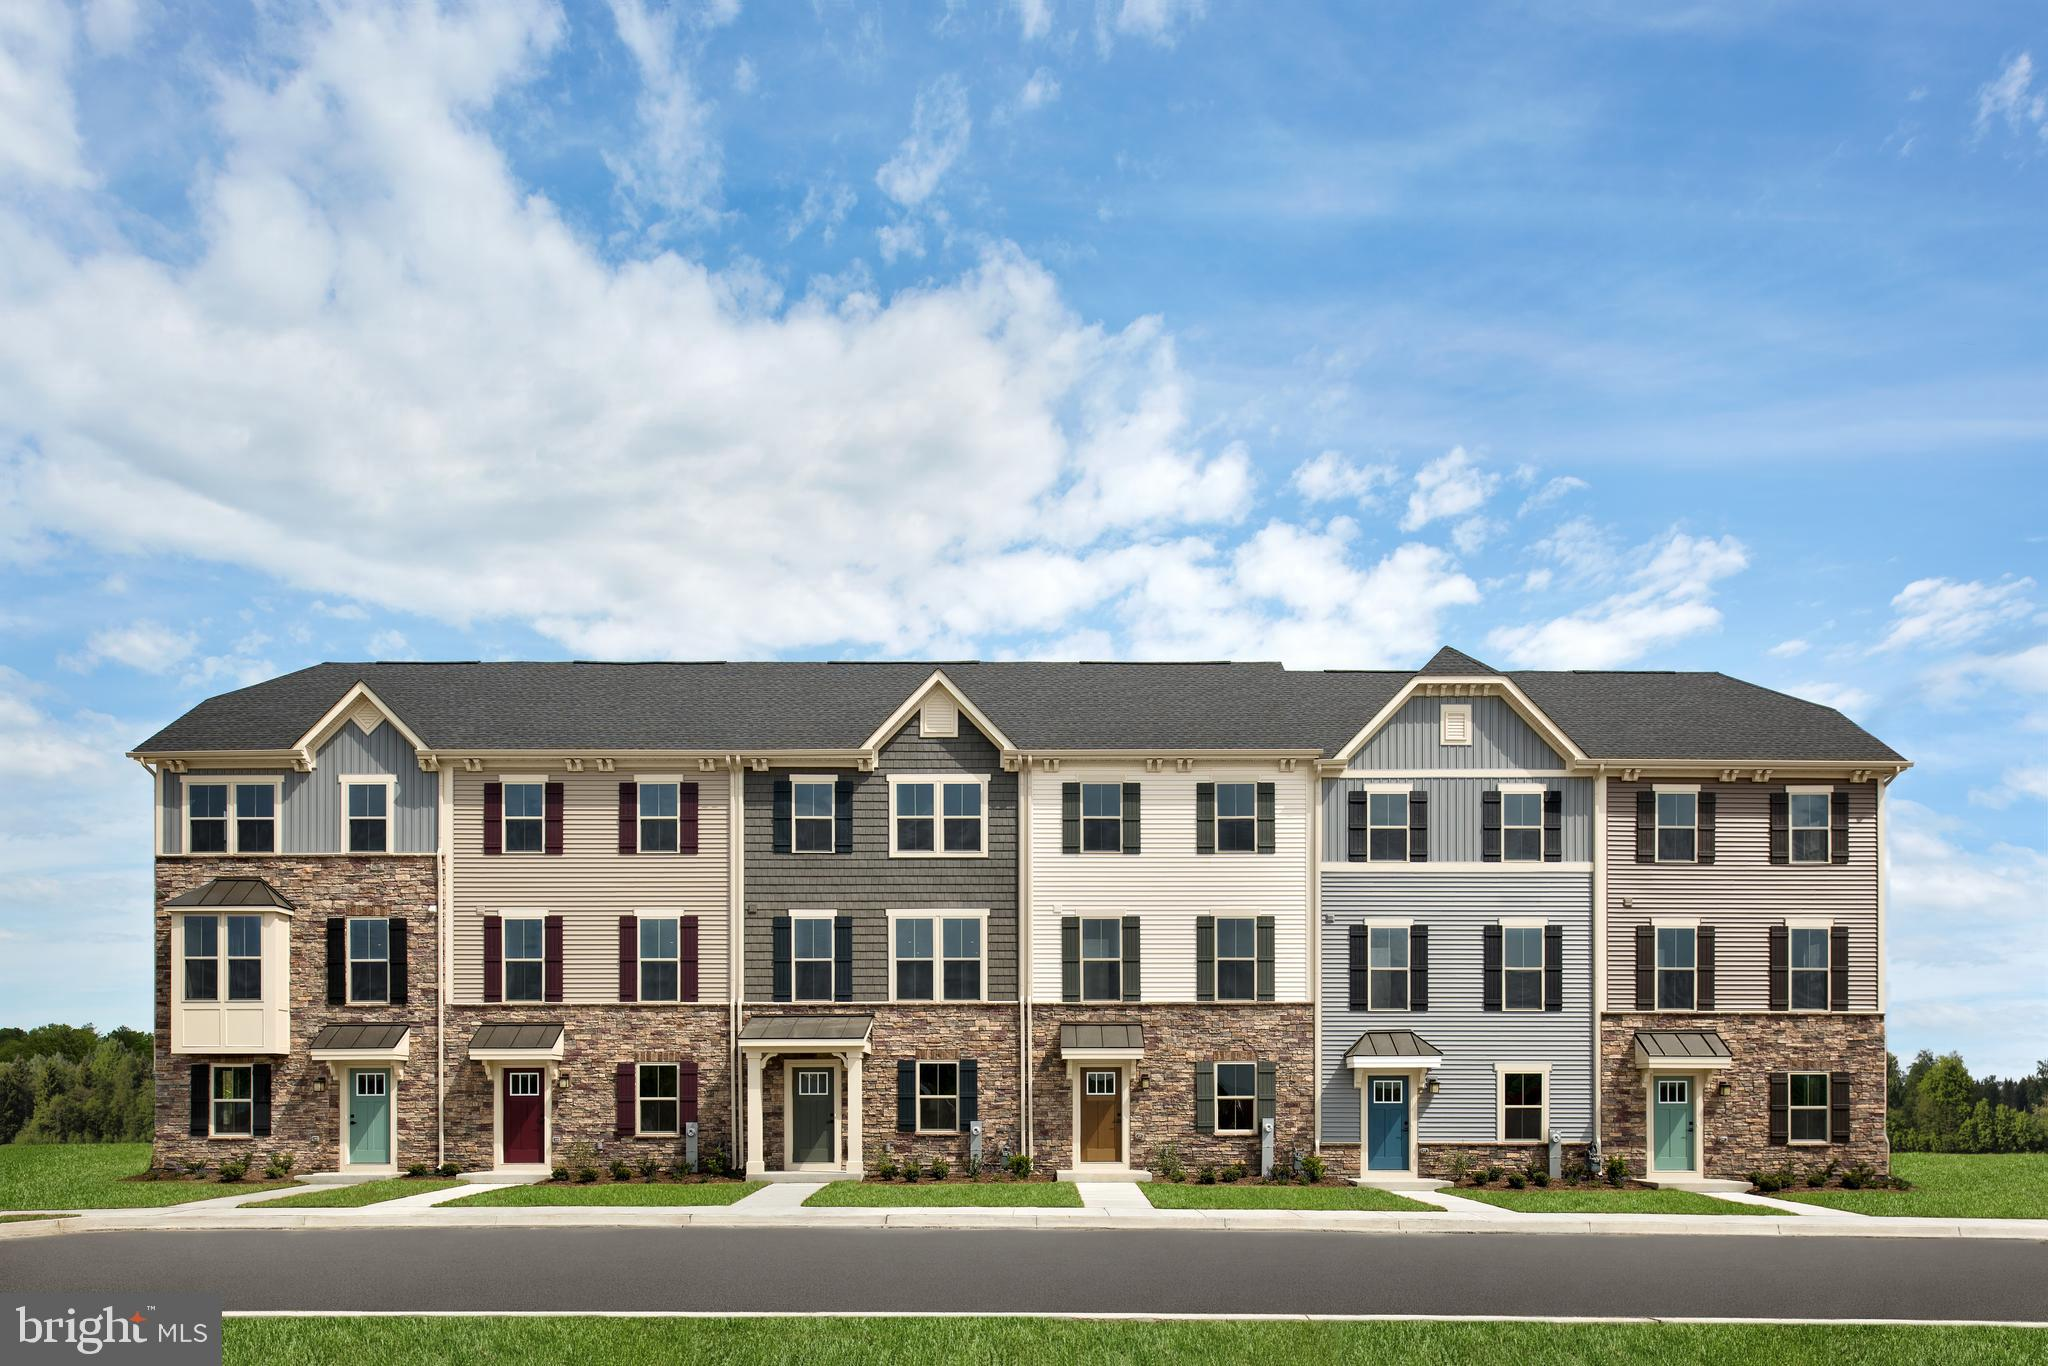 The convenience of townhome living meets the amenities of a single family home in the Mozart! Luxury